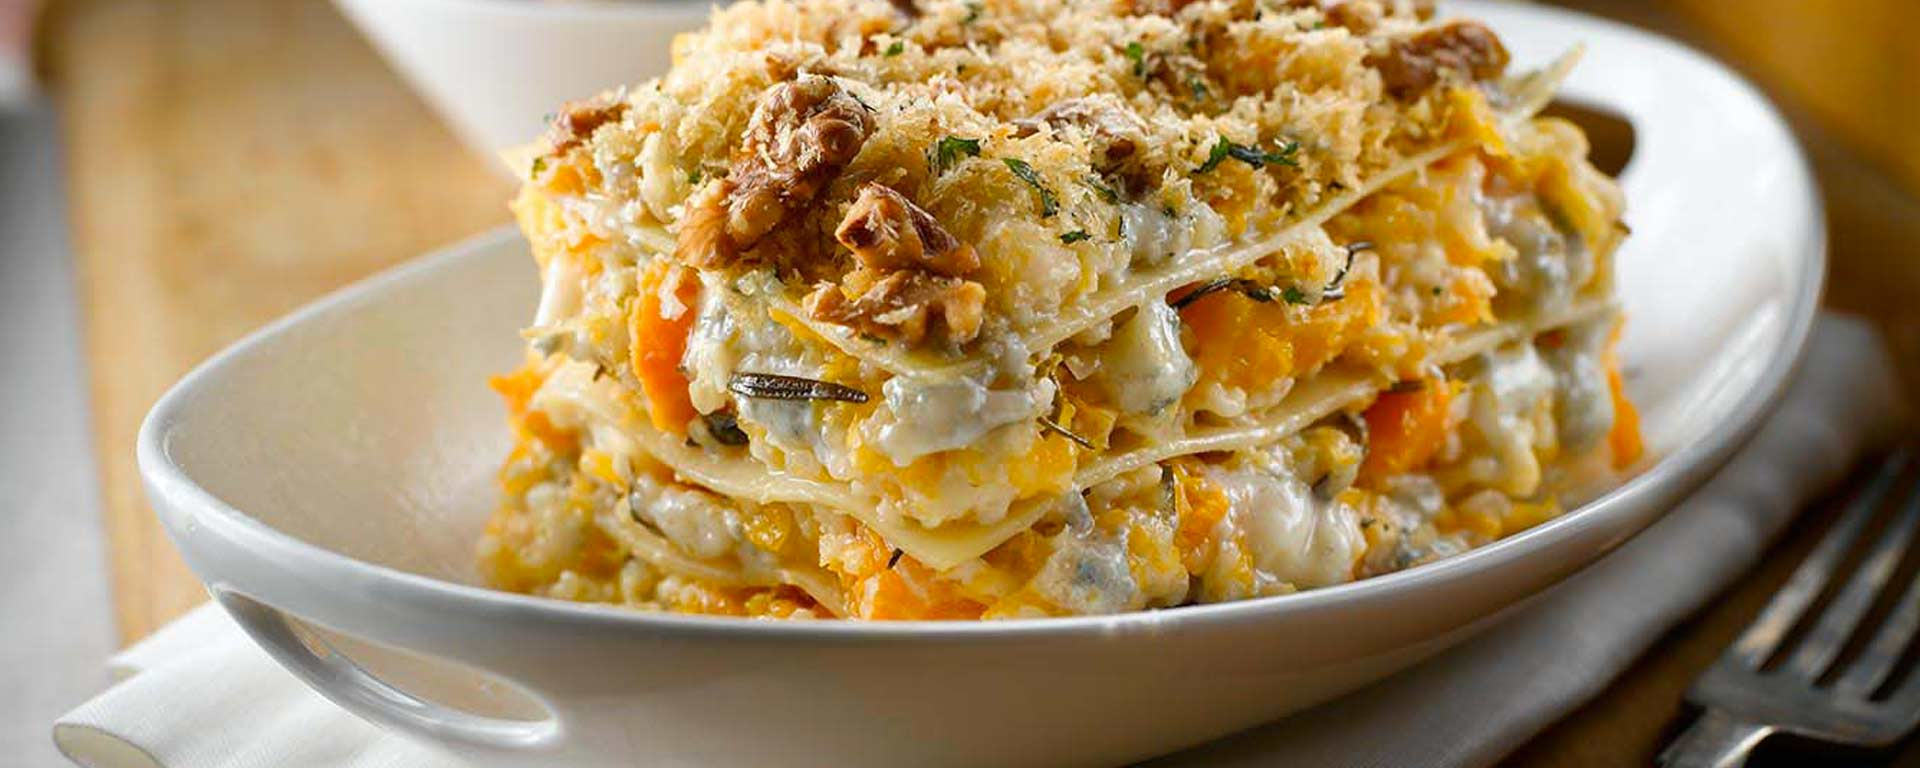 Photo for - Roasted Butternut Squash Lasagna with Gorgonzola